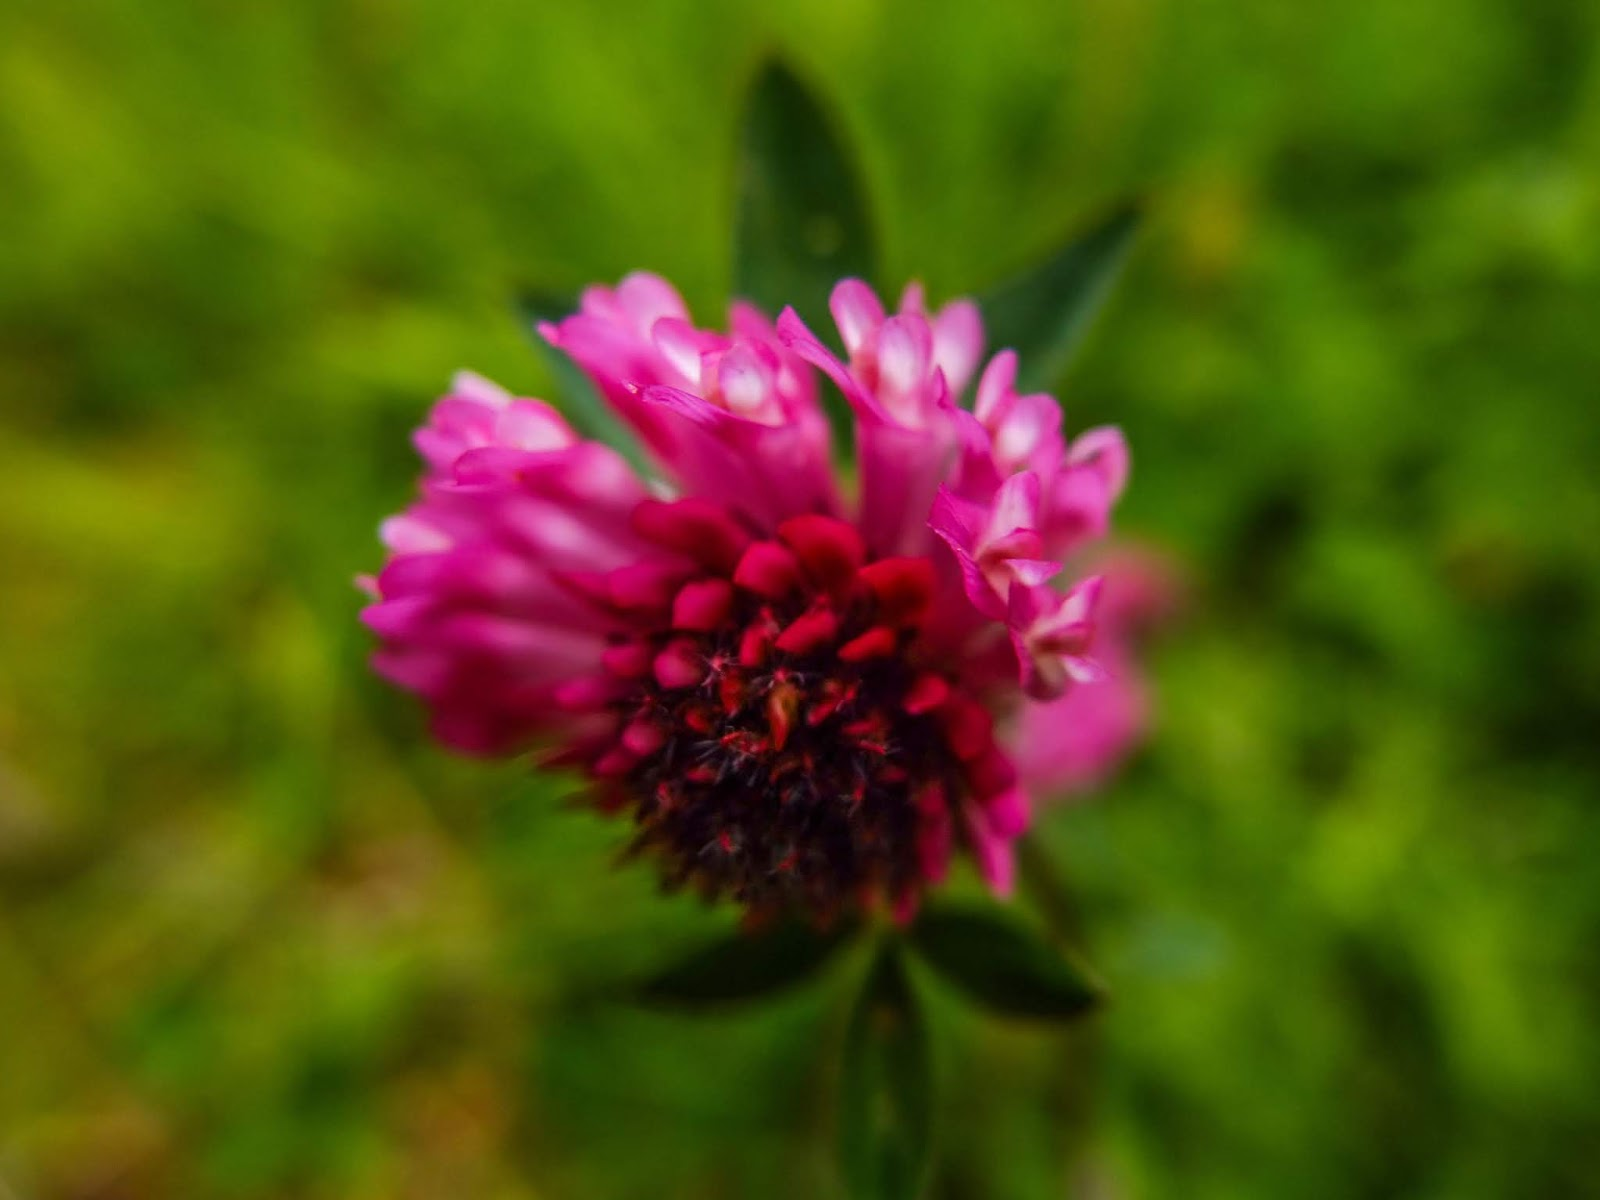 A pink clover flower just began opening its flowers.